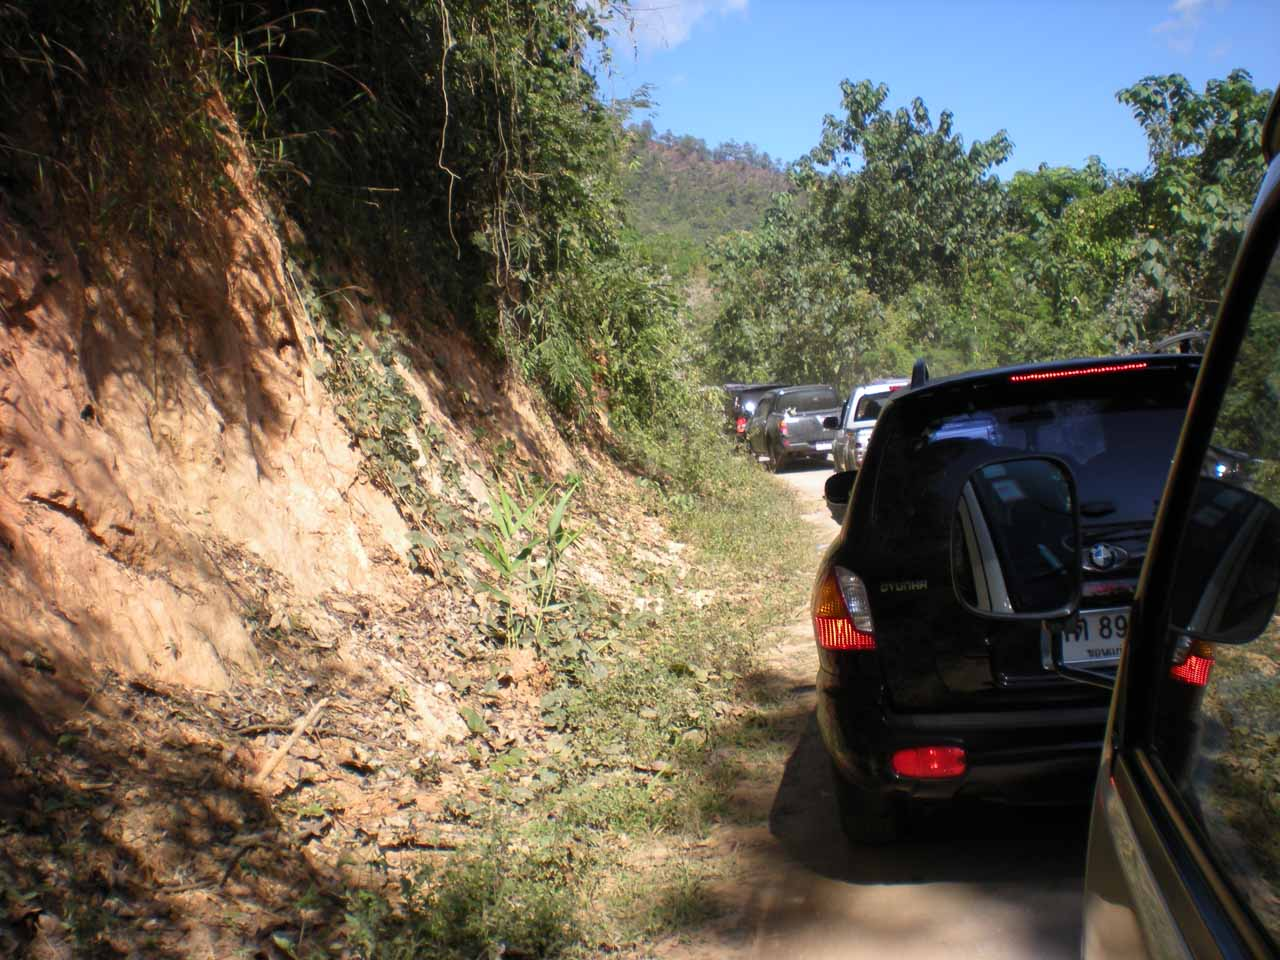 Traffic jam on the way to Pong Dueat